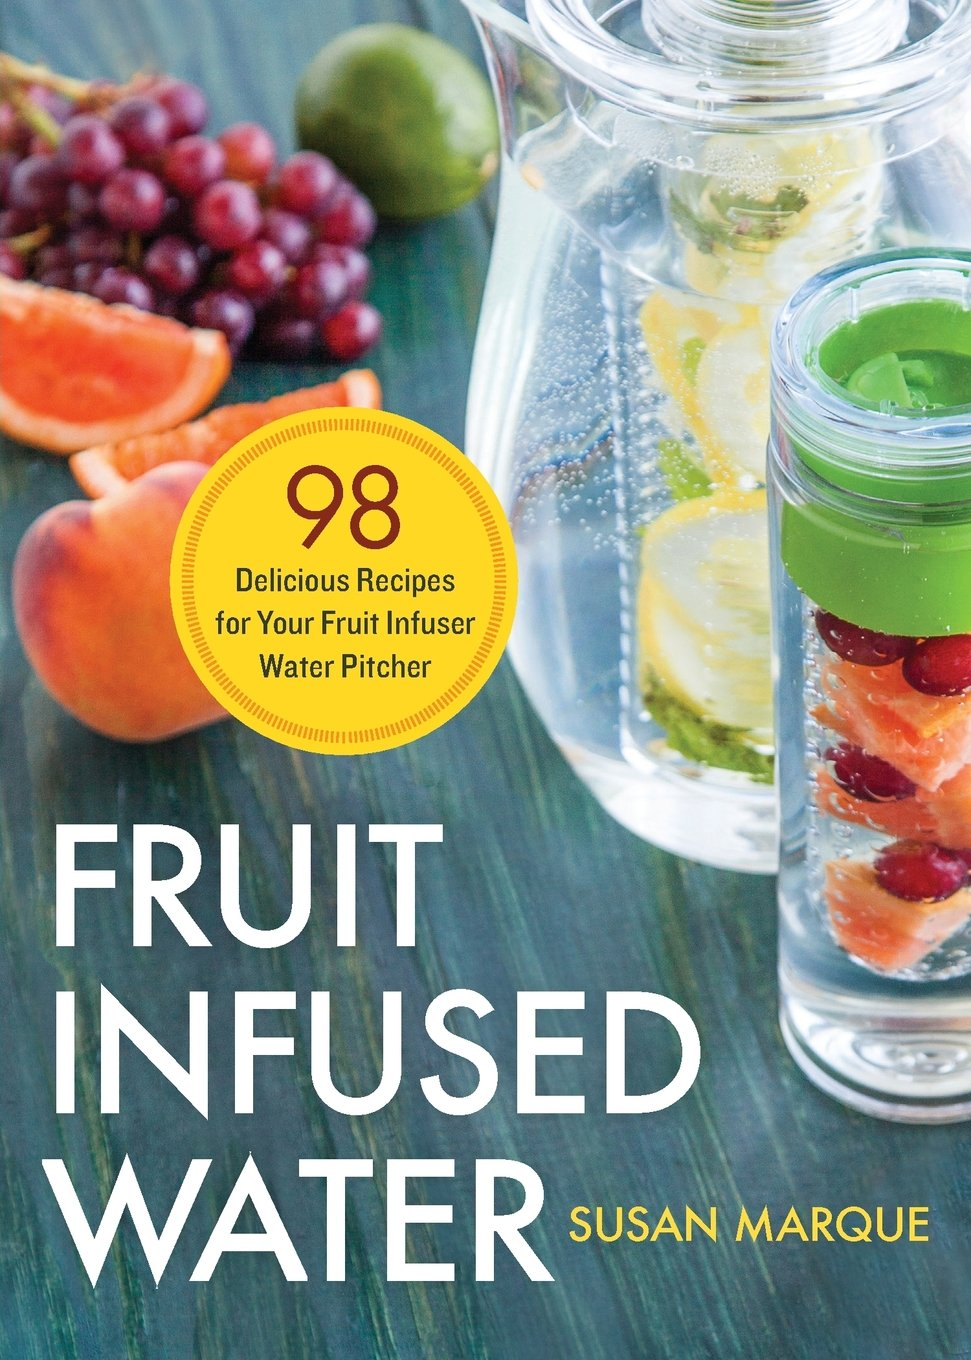 Fruit Infused Water Delicious Recipes product image